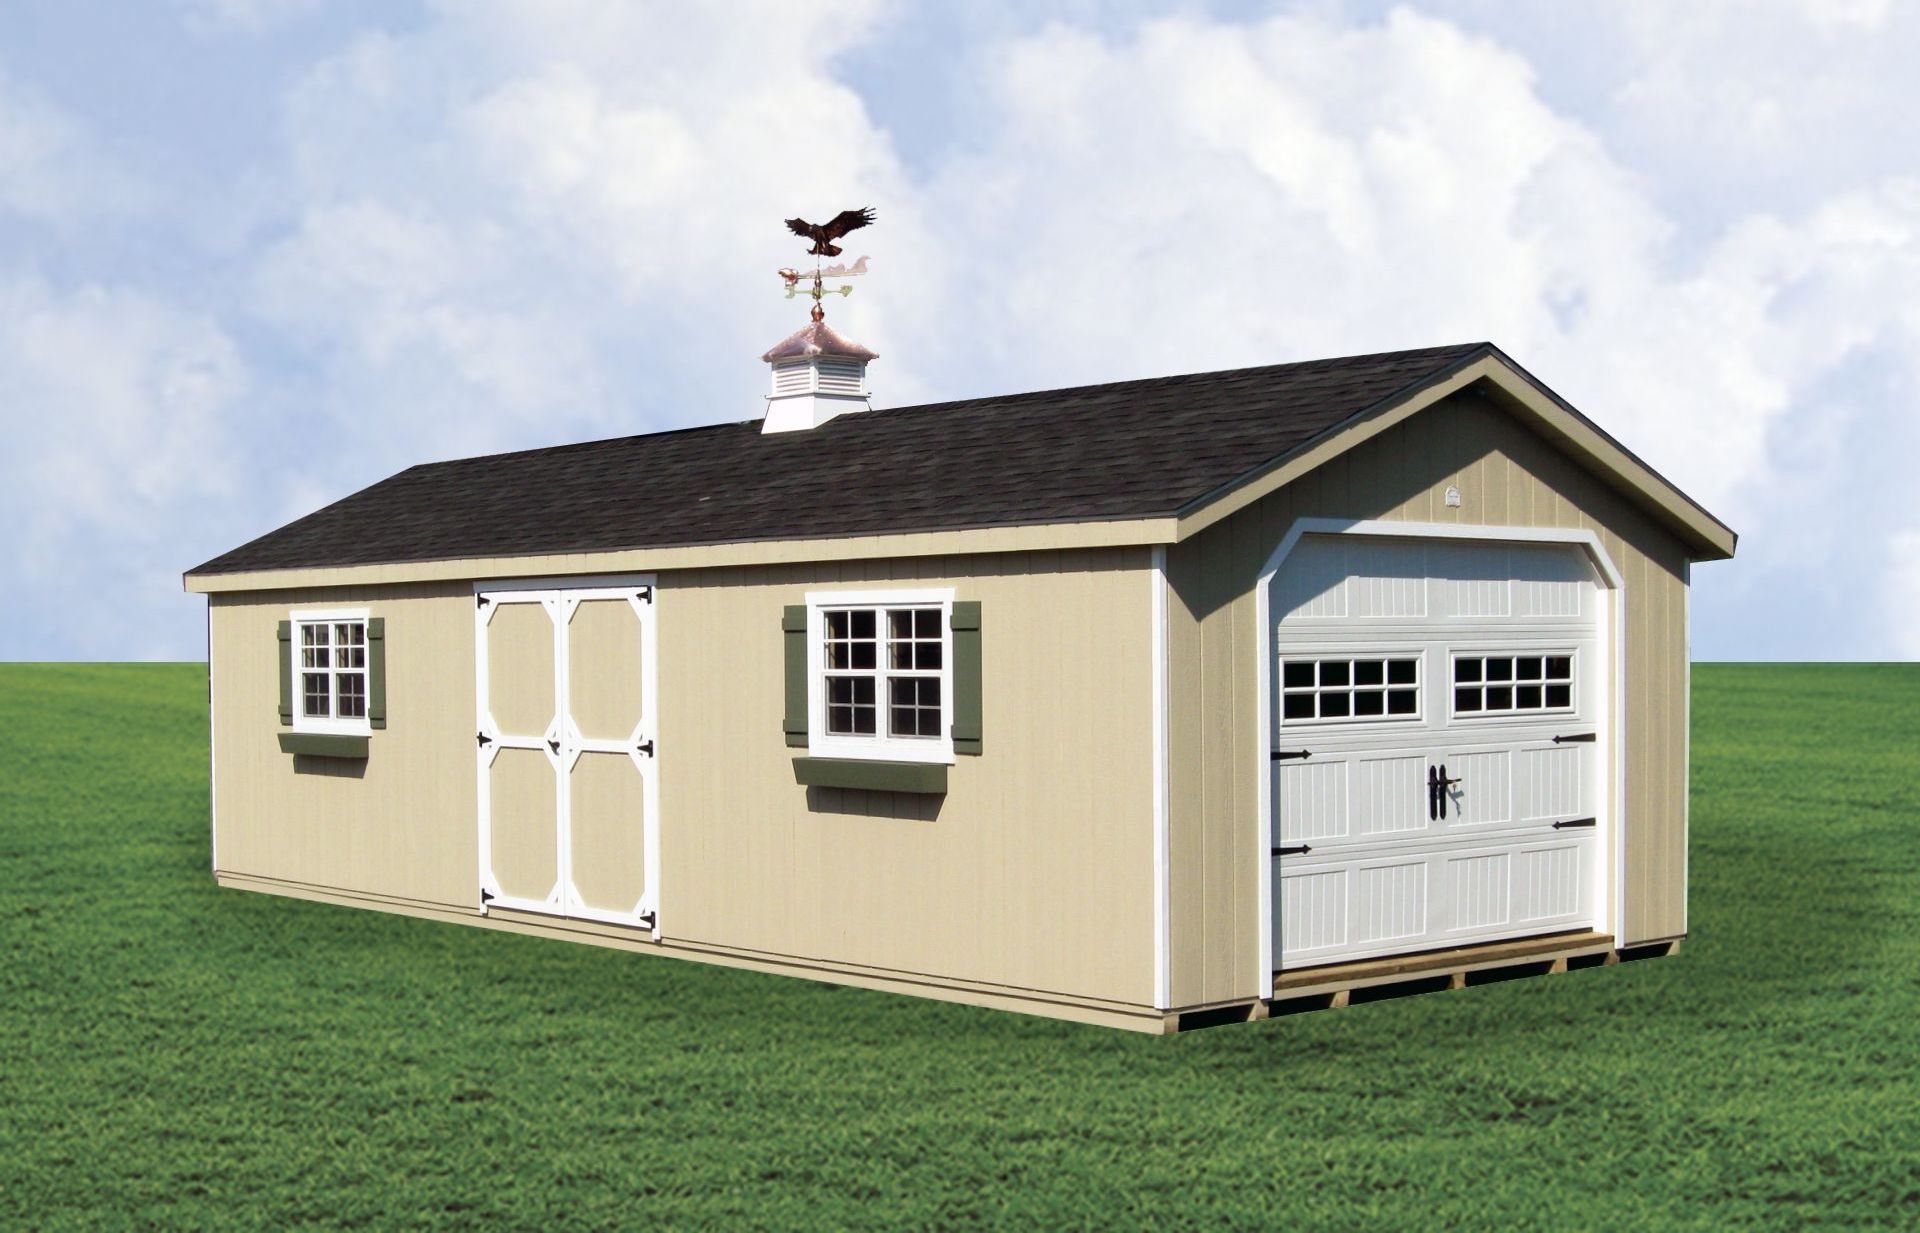 Custom storage garage in Long Island, NY.